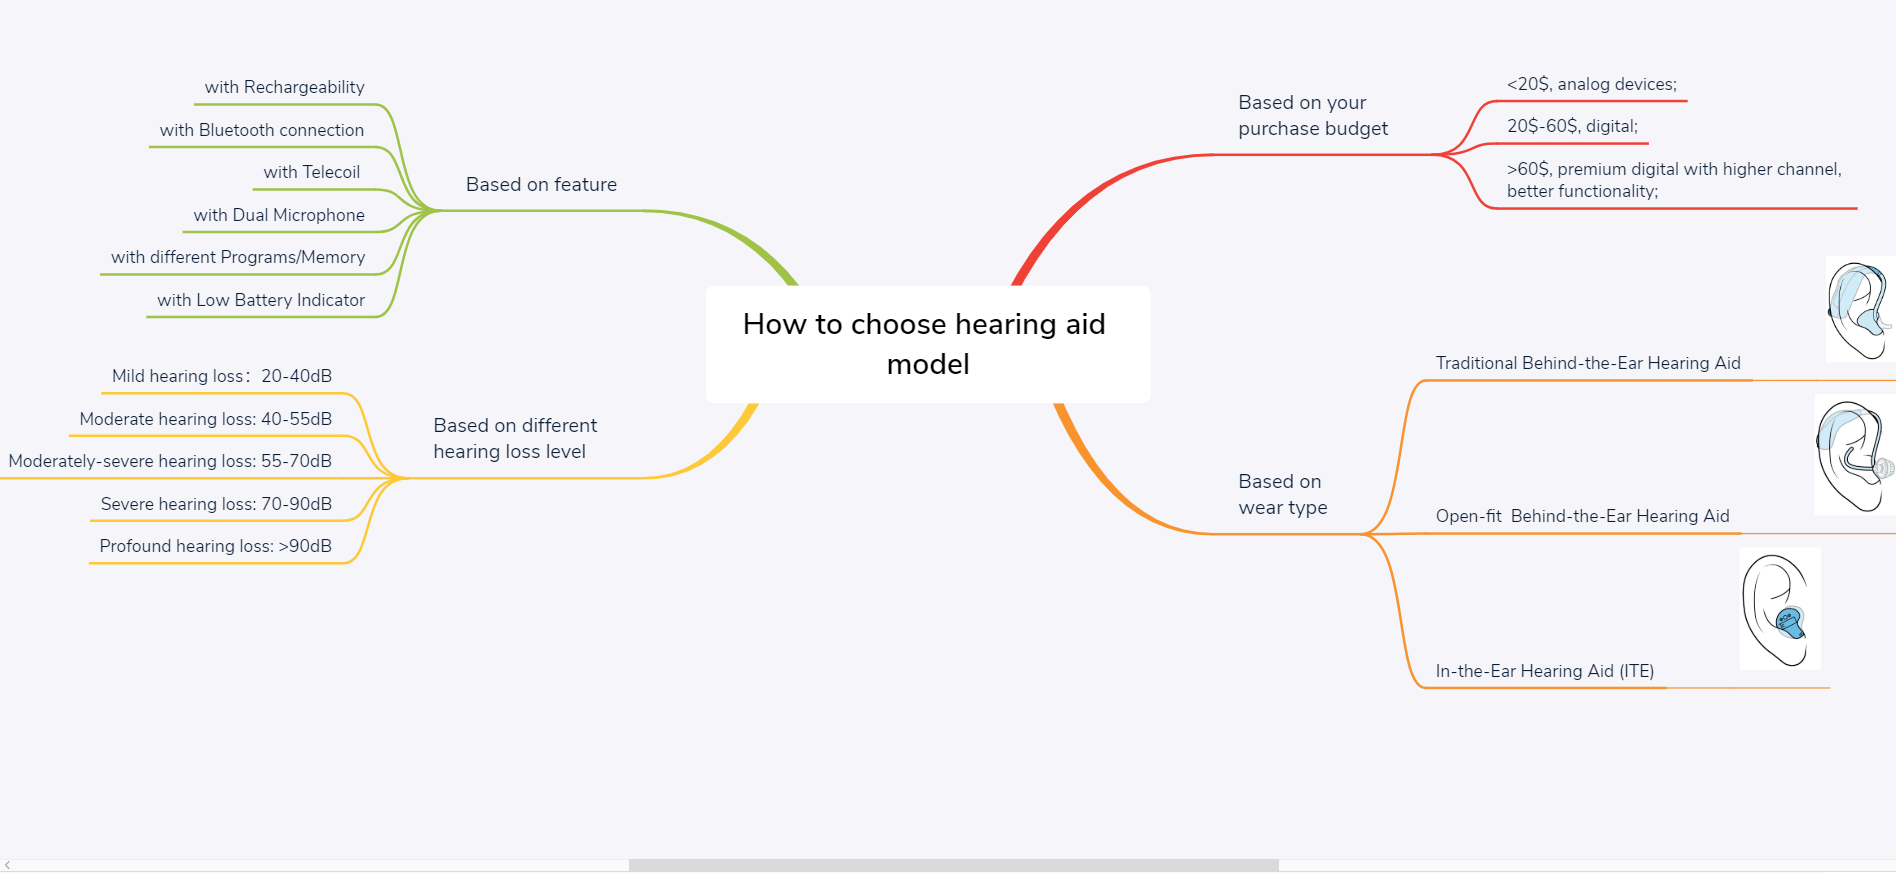 How to choose hearing aid model